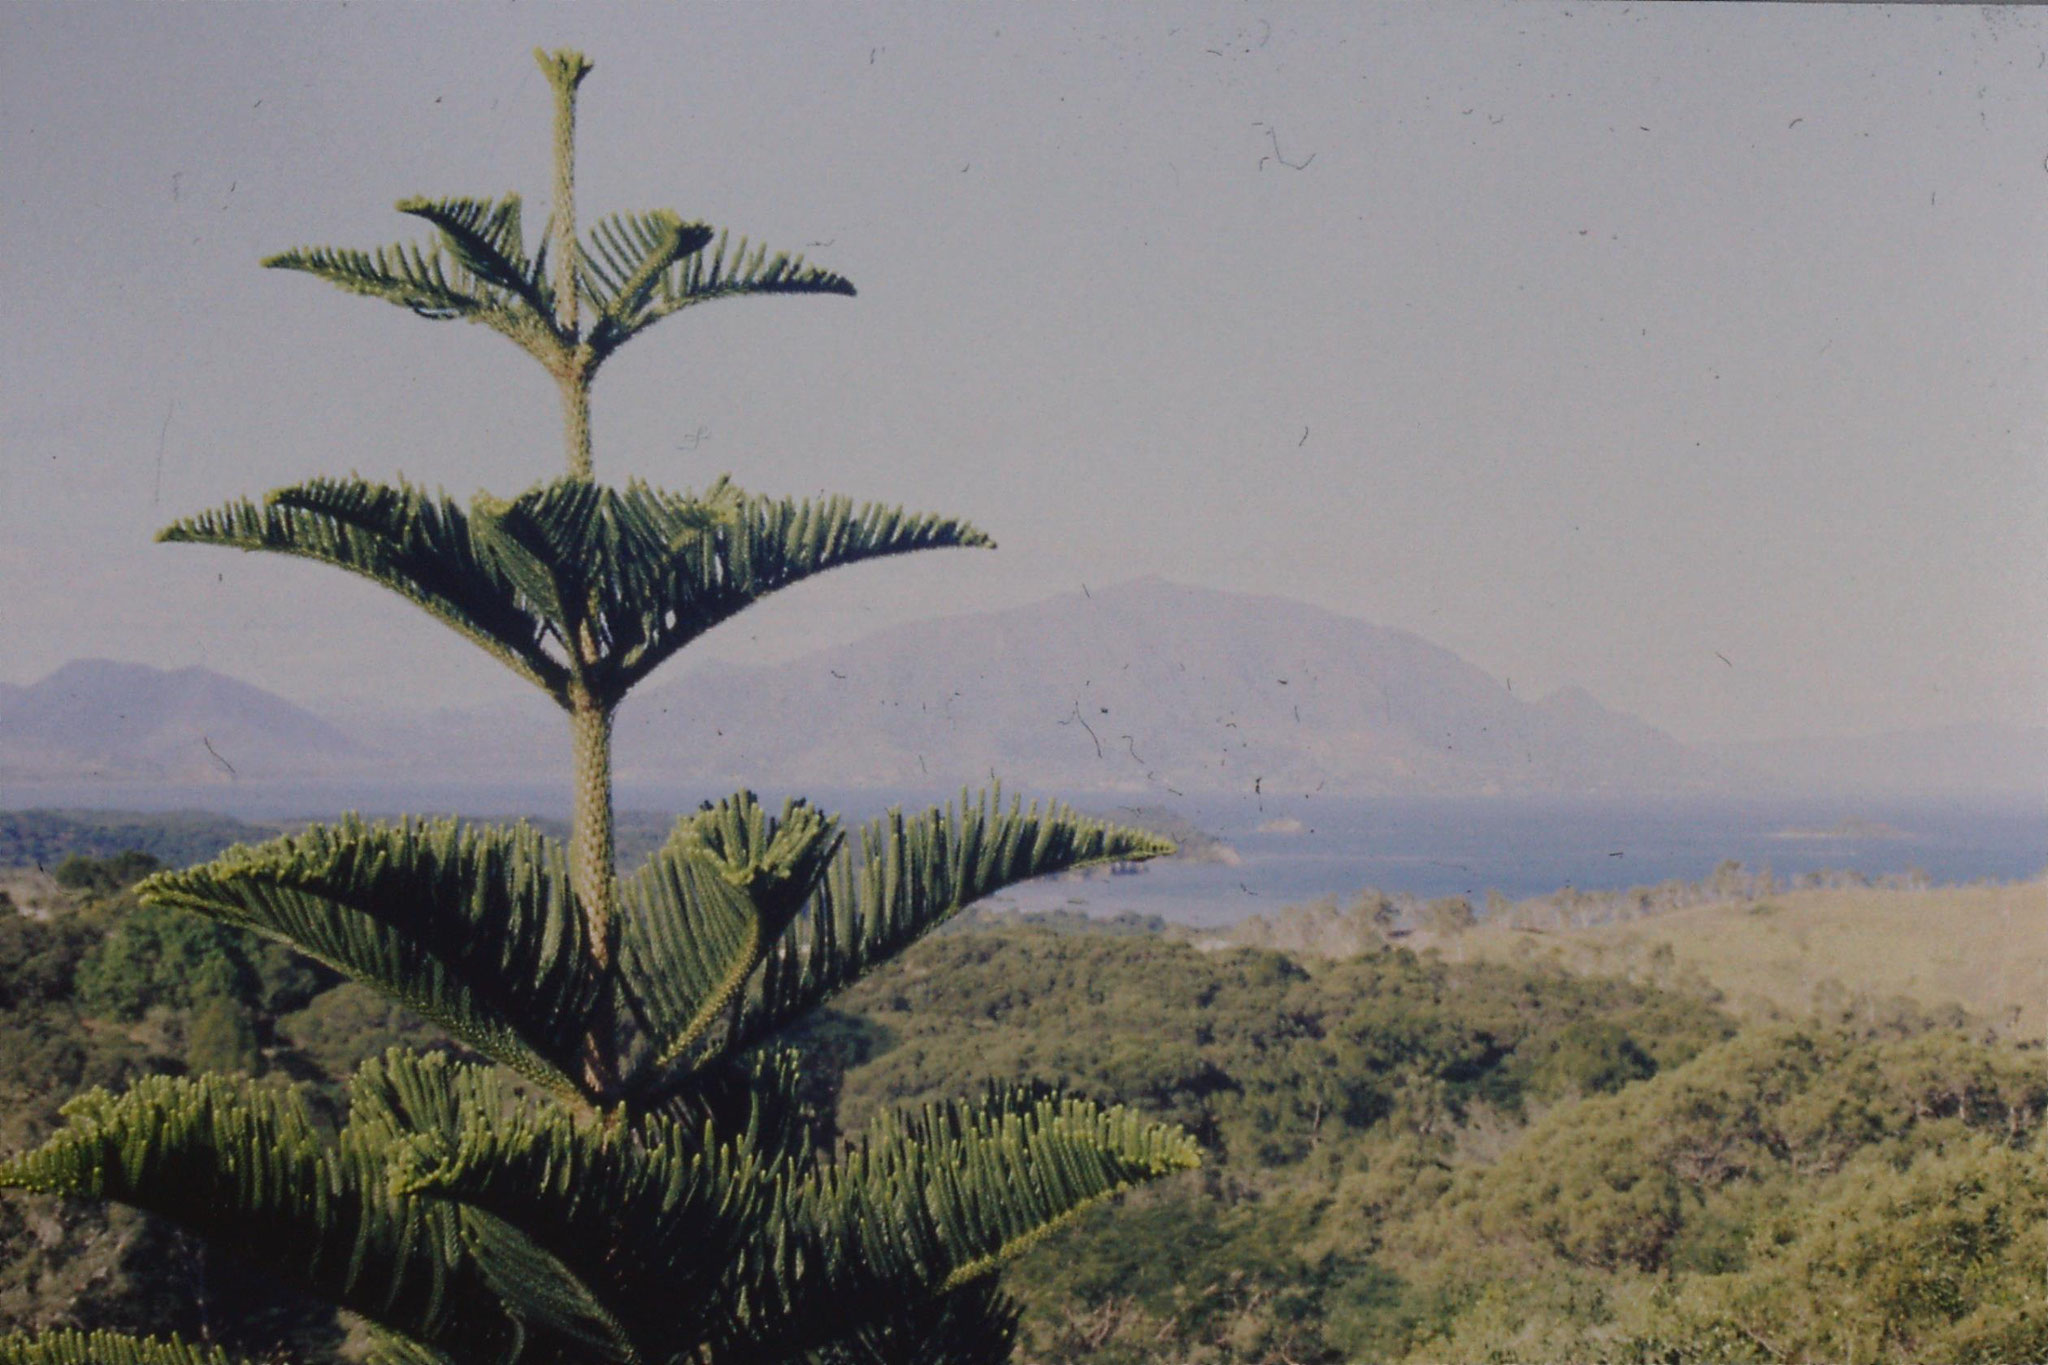 19/7/1990: 11: Noumea looking east from Parc Forestier